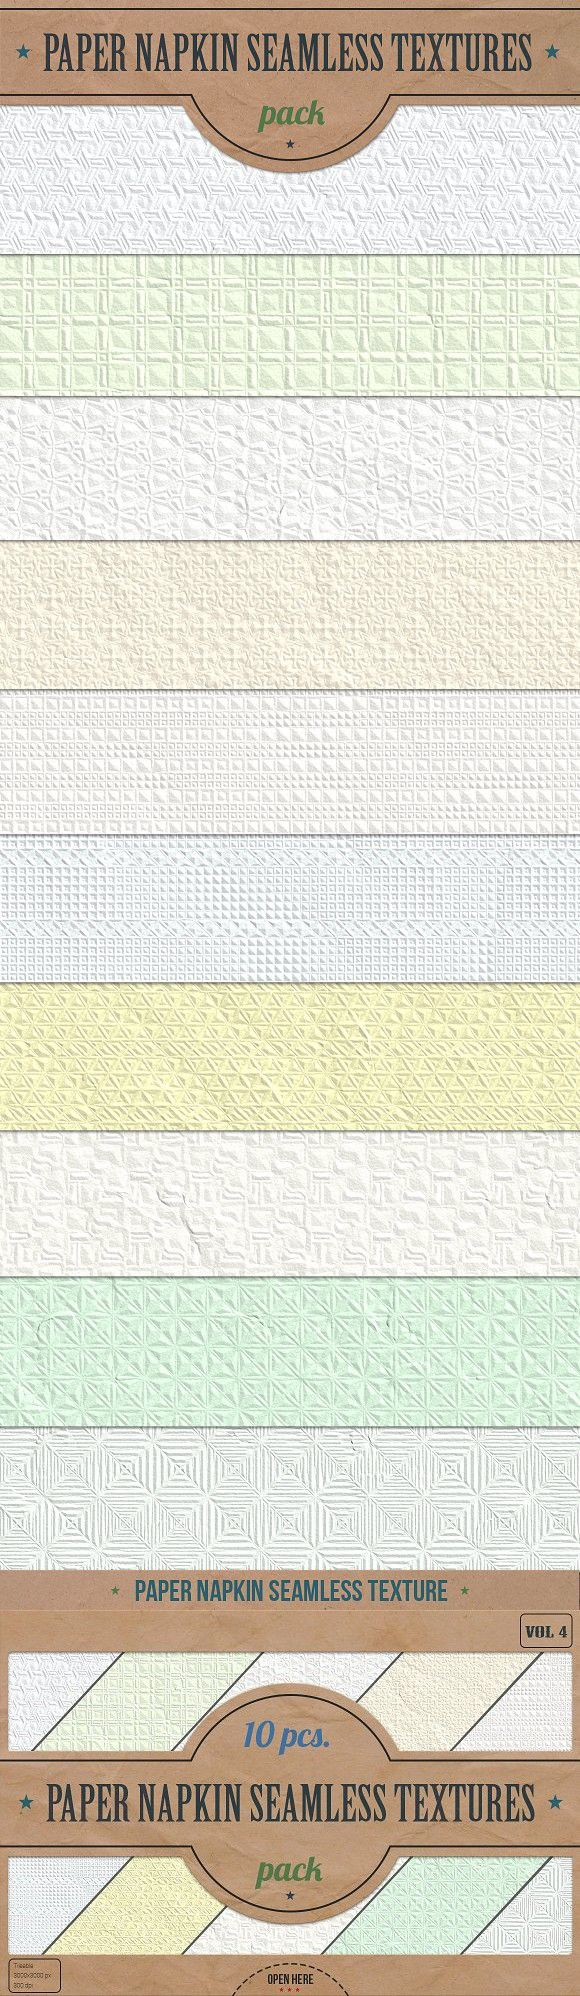 Napkin Seamless Textures Pack v.4. Textures